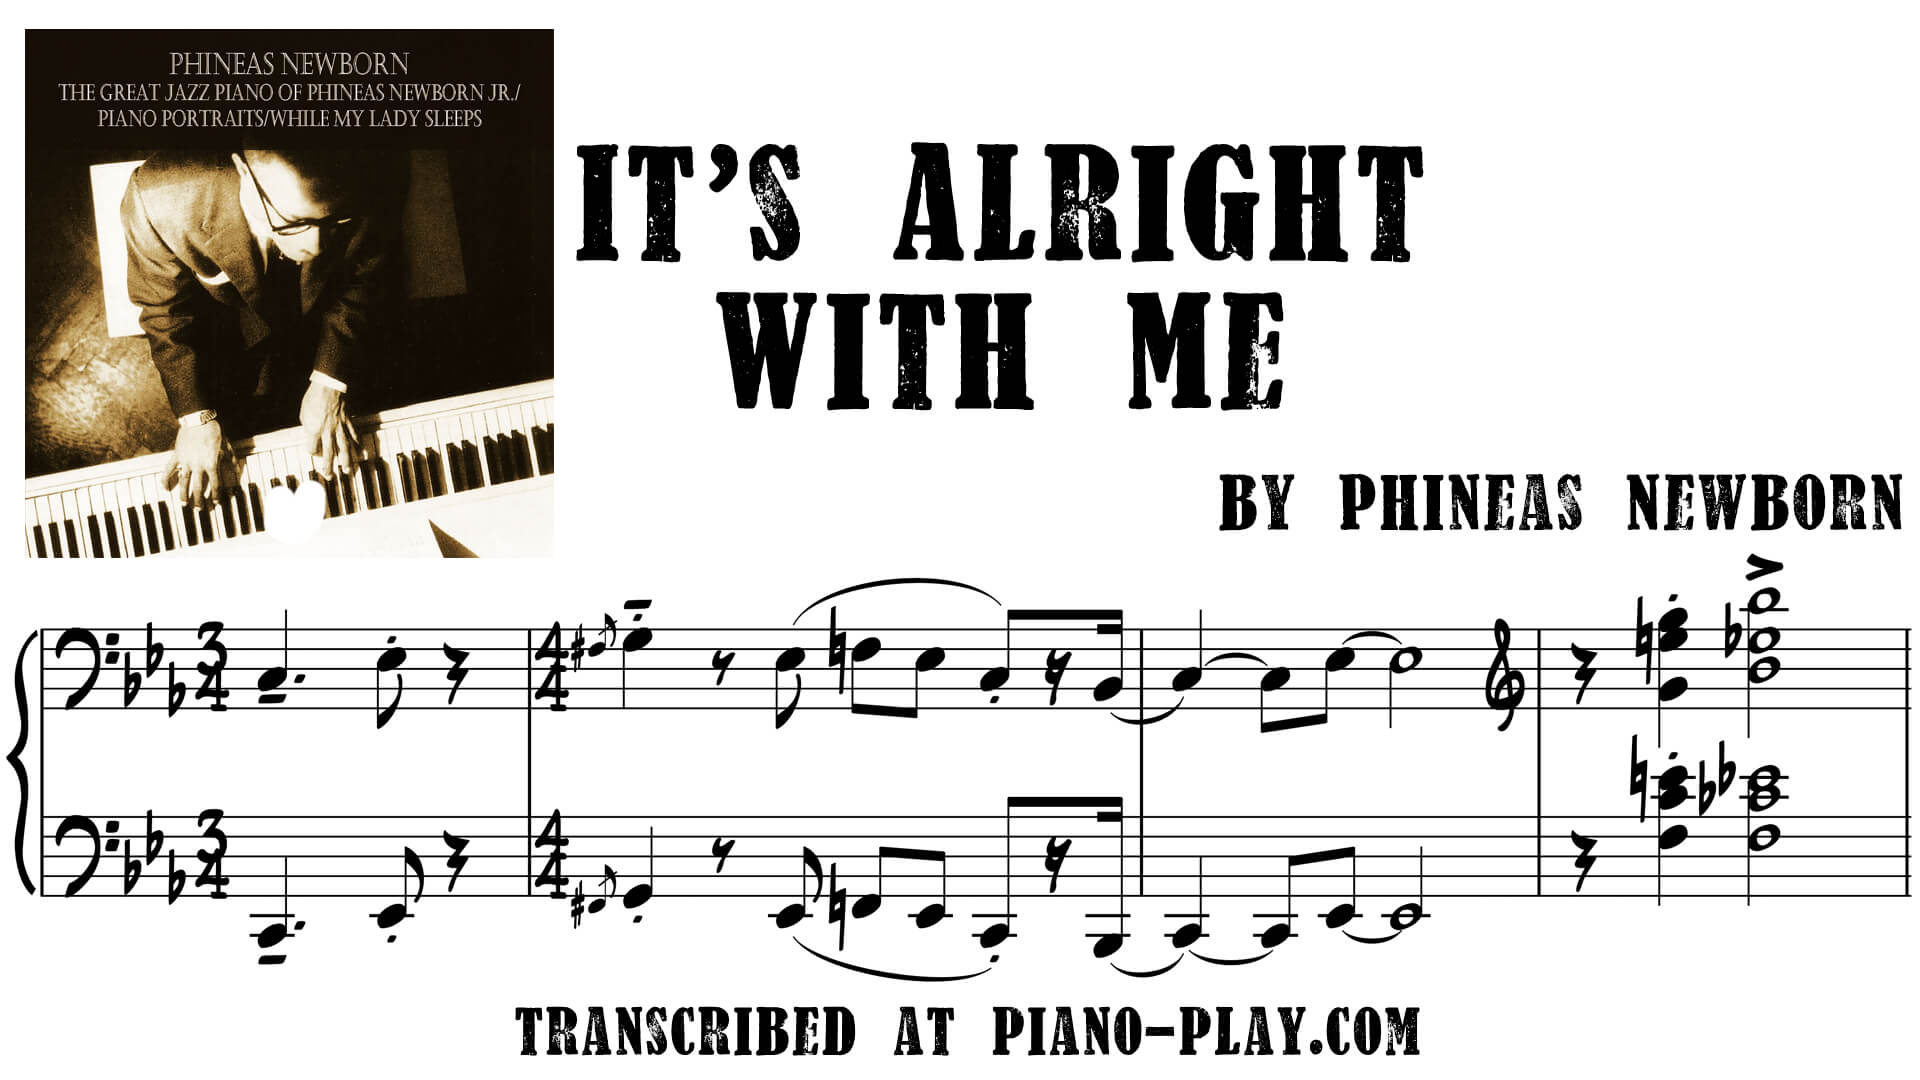 transcription Phineas Newborn It's Alright With Me